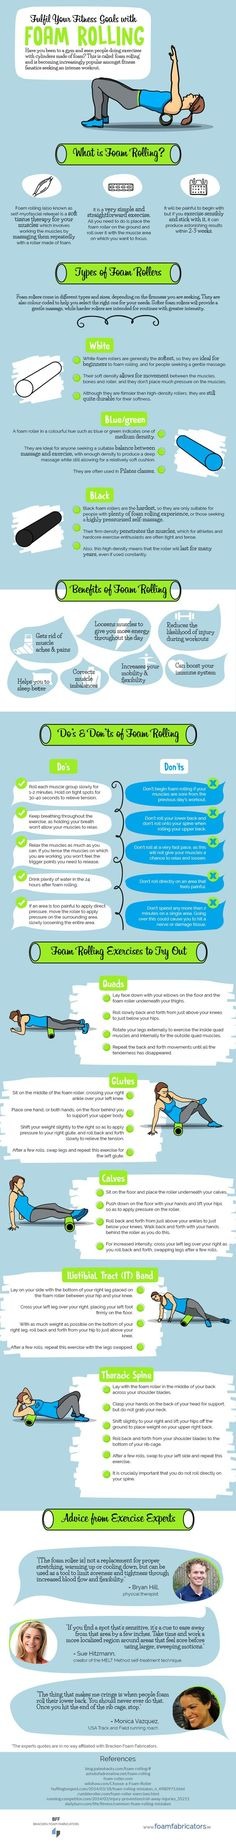 Yoga Fitness Flow - Fulfil-Your-Fitness-Goals-with-Foam-Rolling-Infographic - Get Your Sexiest Body Ever! You Fitness, Fitness Goals, Fitness Tips, Fitness Motivation, Health Fitness, Fitness Online, Fitness Brand, Health Goals, Fitness Tracker